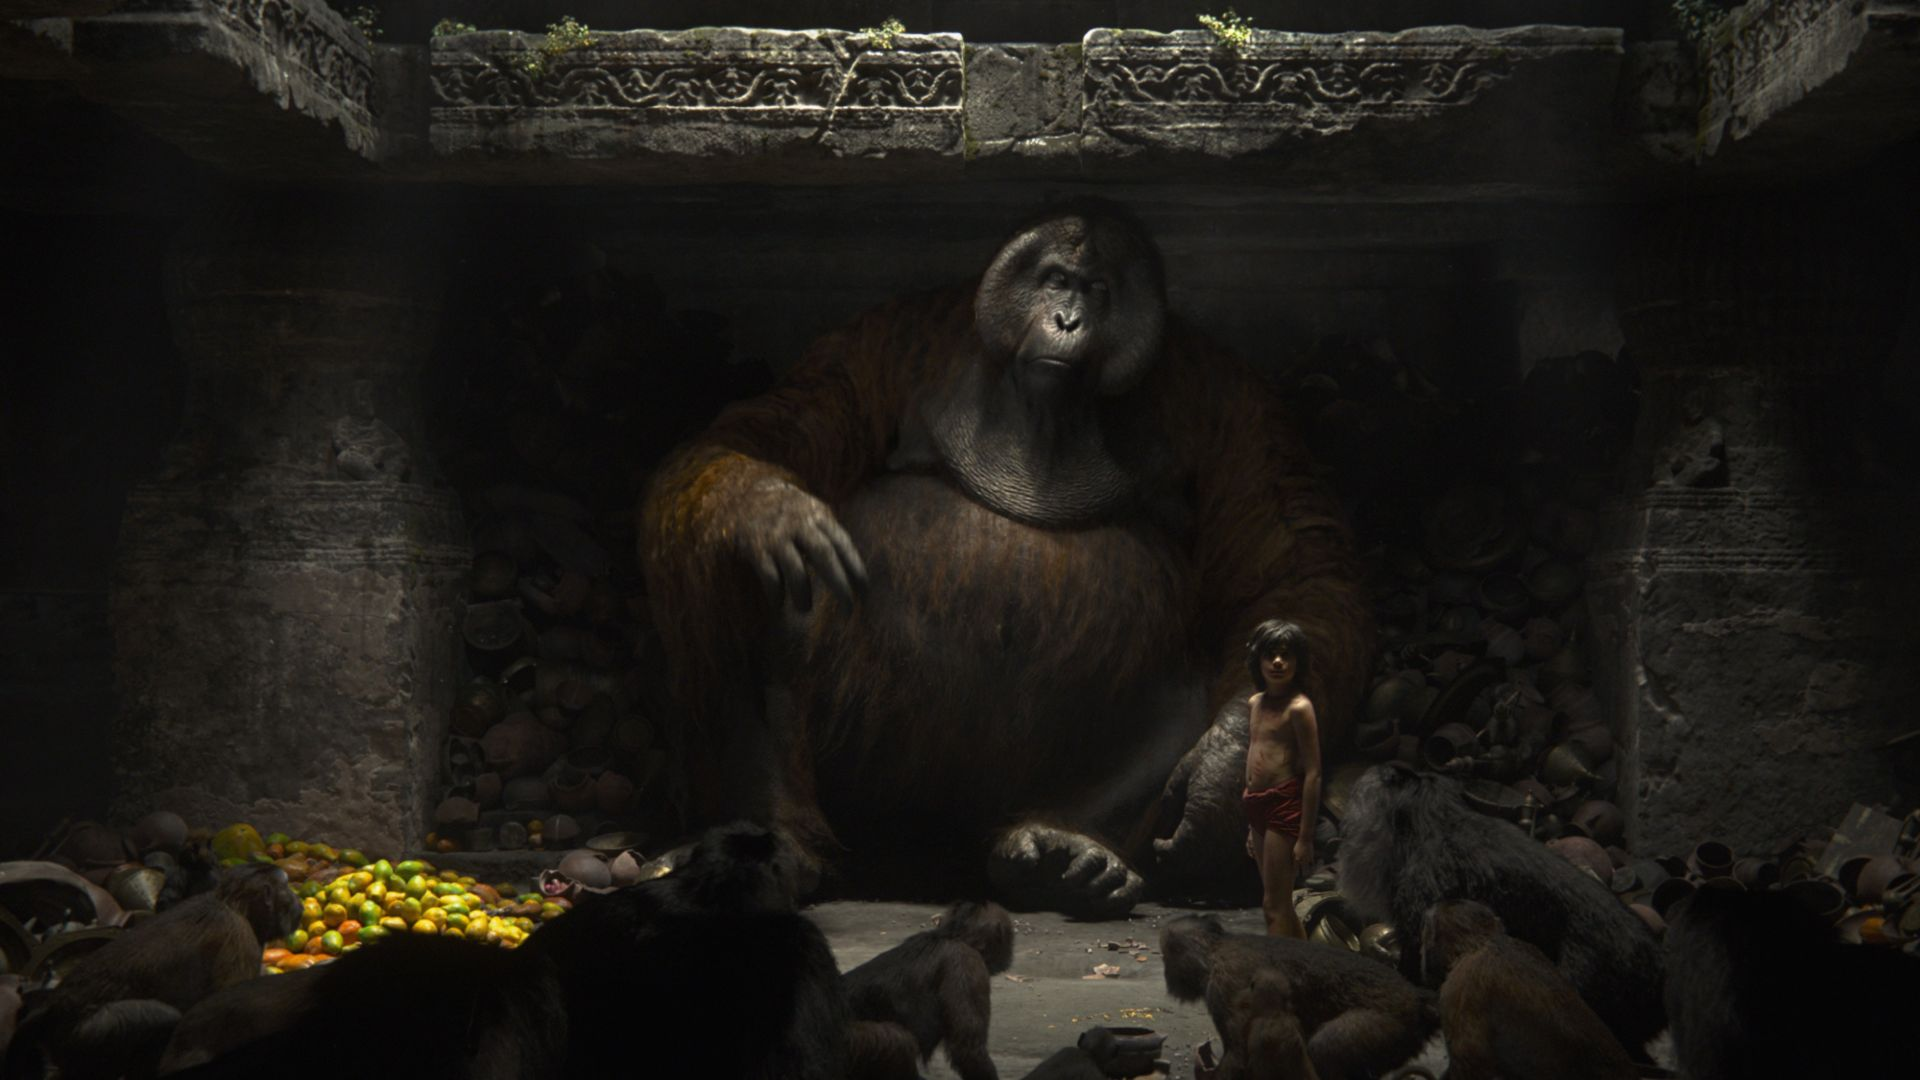 The Jungle Book, Monkey King, King Louie, adventure, fantasy, Best movies of 2016